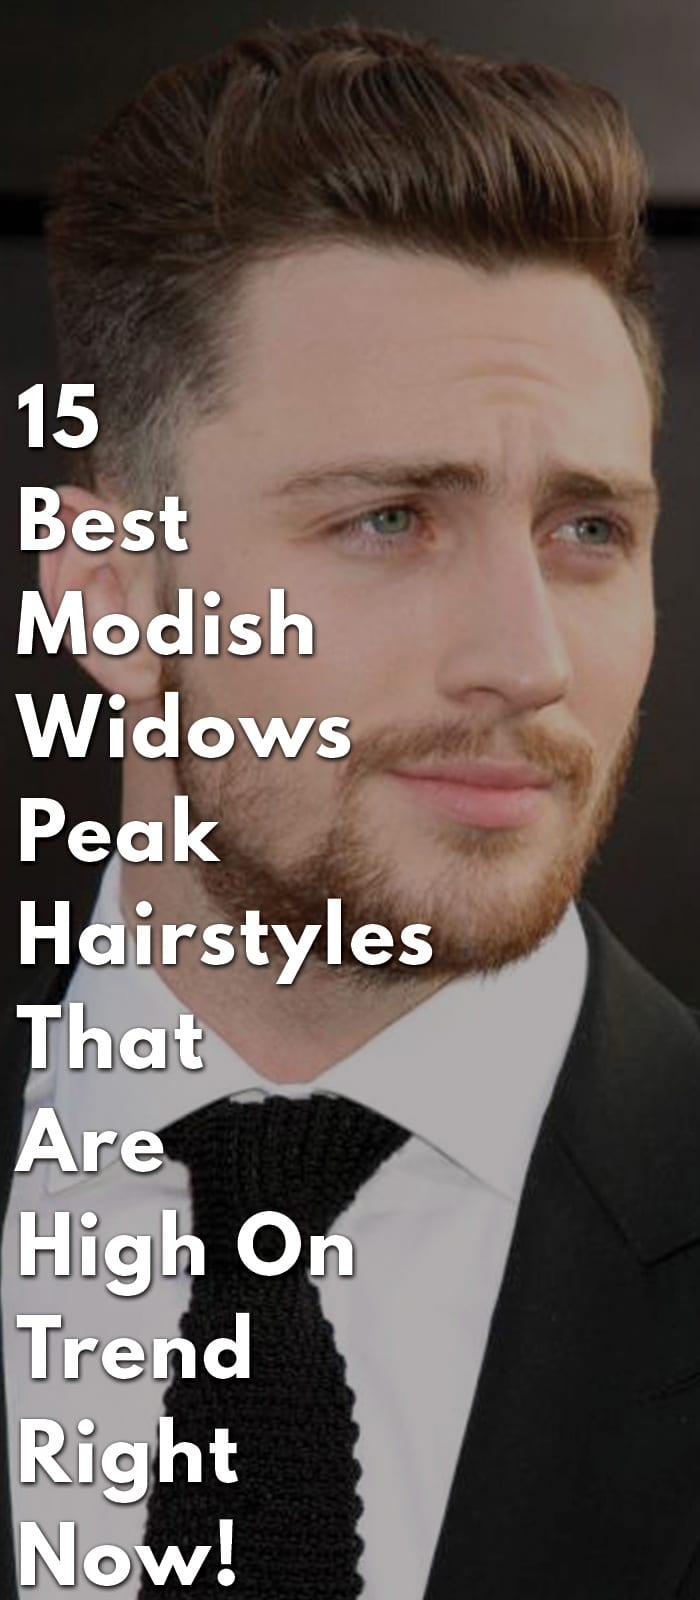 15-Best-Modish-Widows-Peak-Hairstyles-That-Are-High-On-Trend-Right-Now!